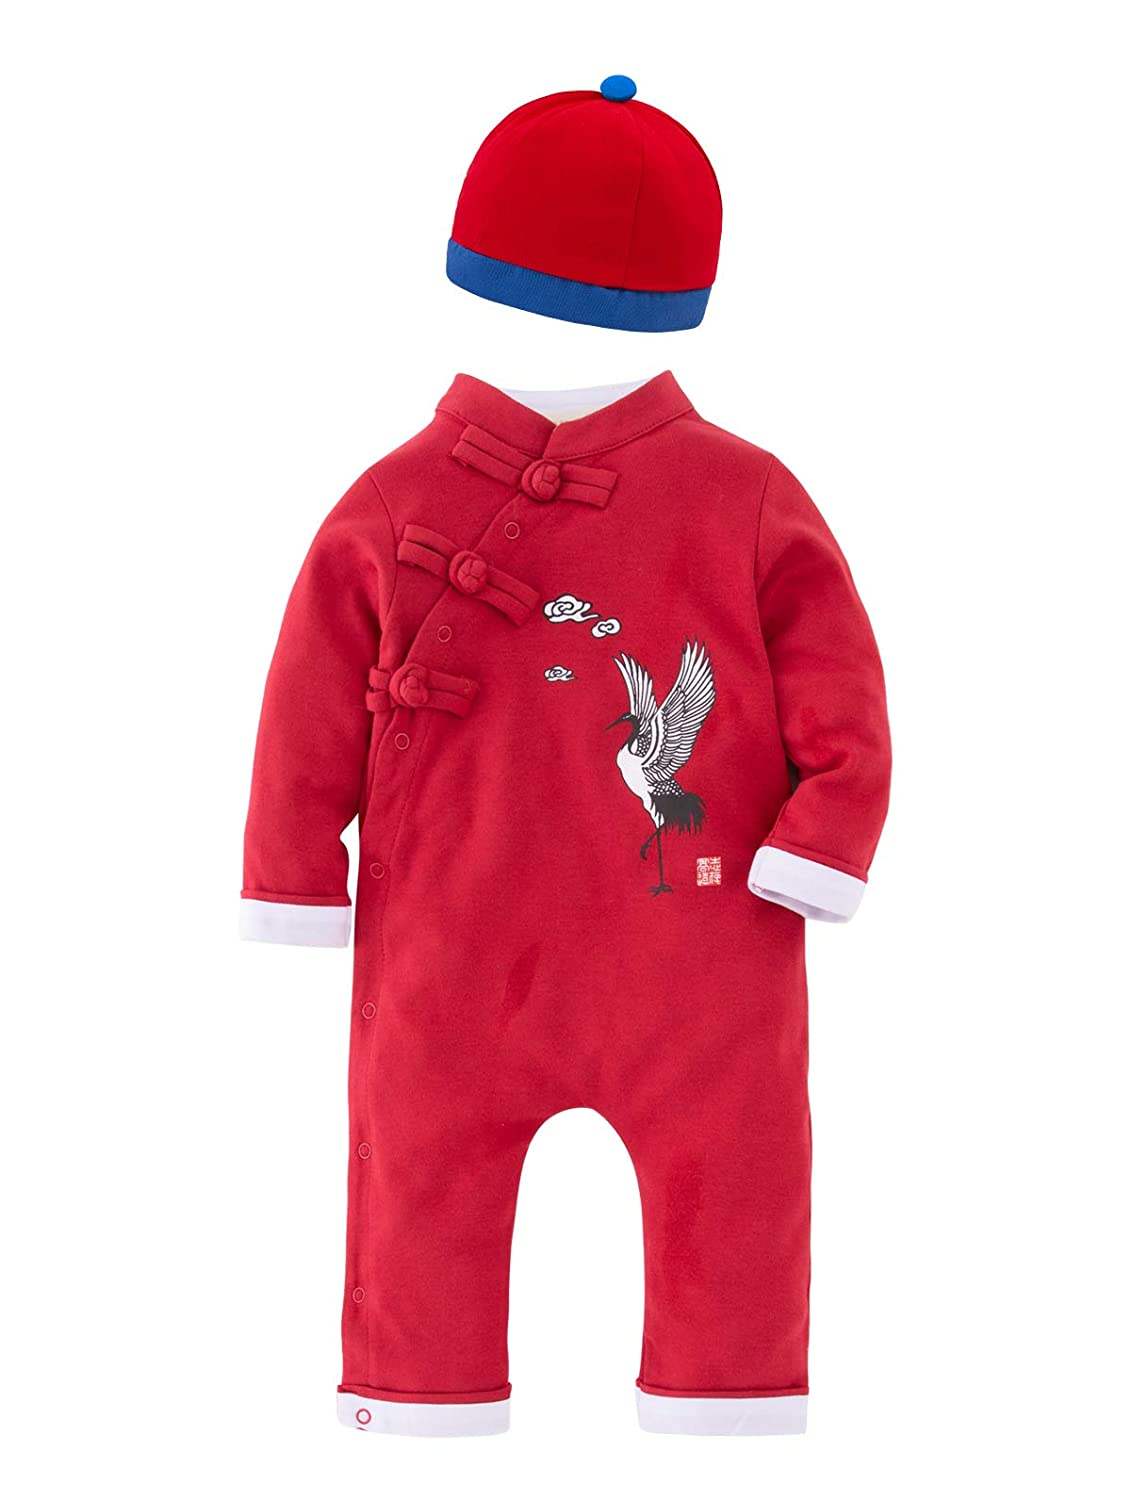 Mays Baby Toddler Chinese de Stijl Rompers New Year Genre Jumpsuit